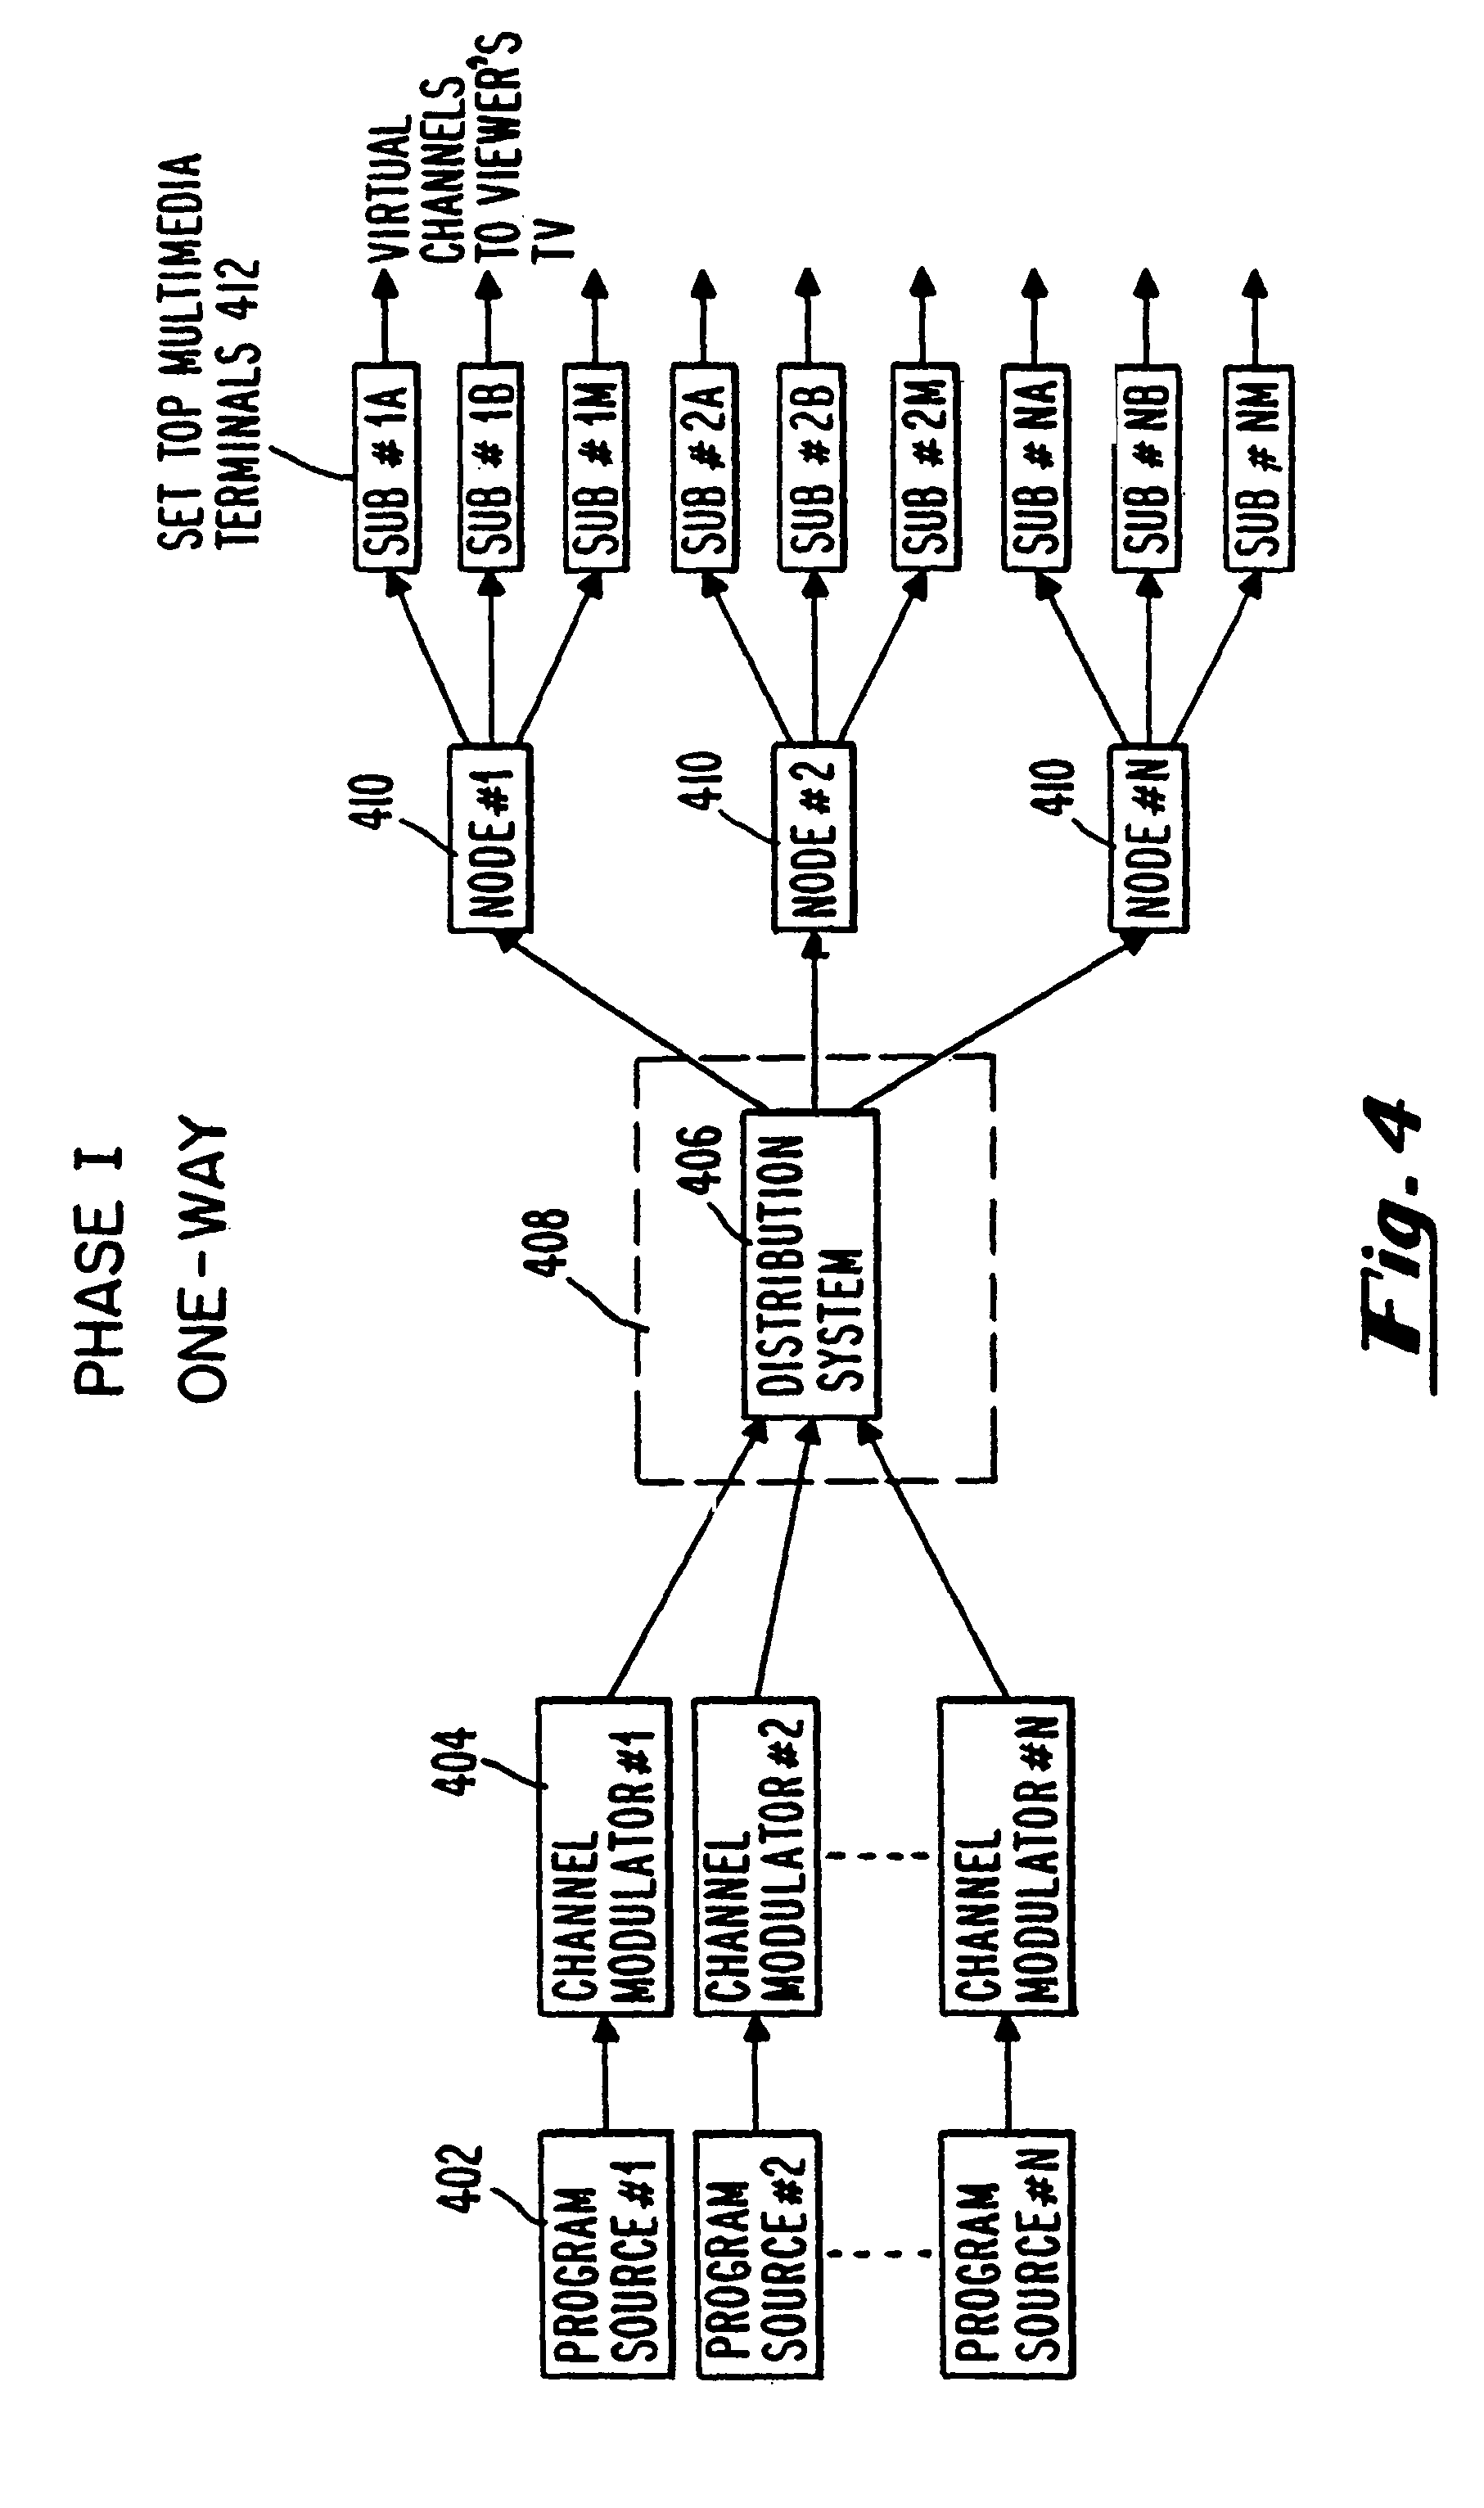 Us8056100b2 System And Method For Providing Access To Data Using Audio Interfaces Redbox Distribution Amplifiers Customer Profiles Google Patents